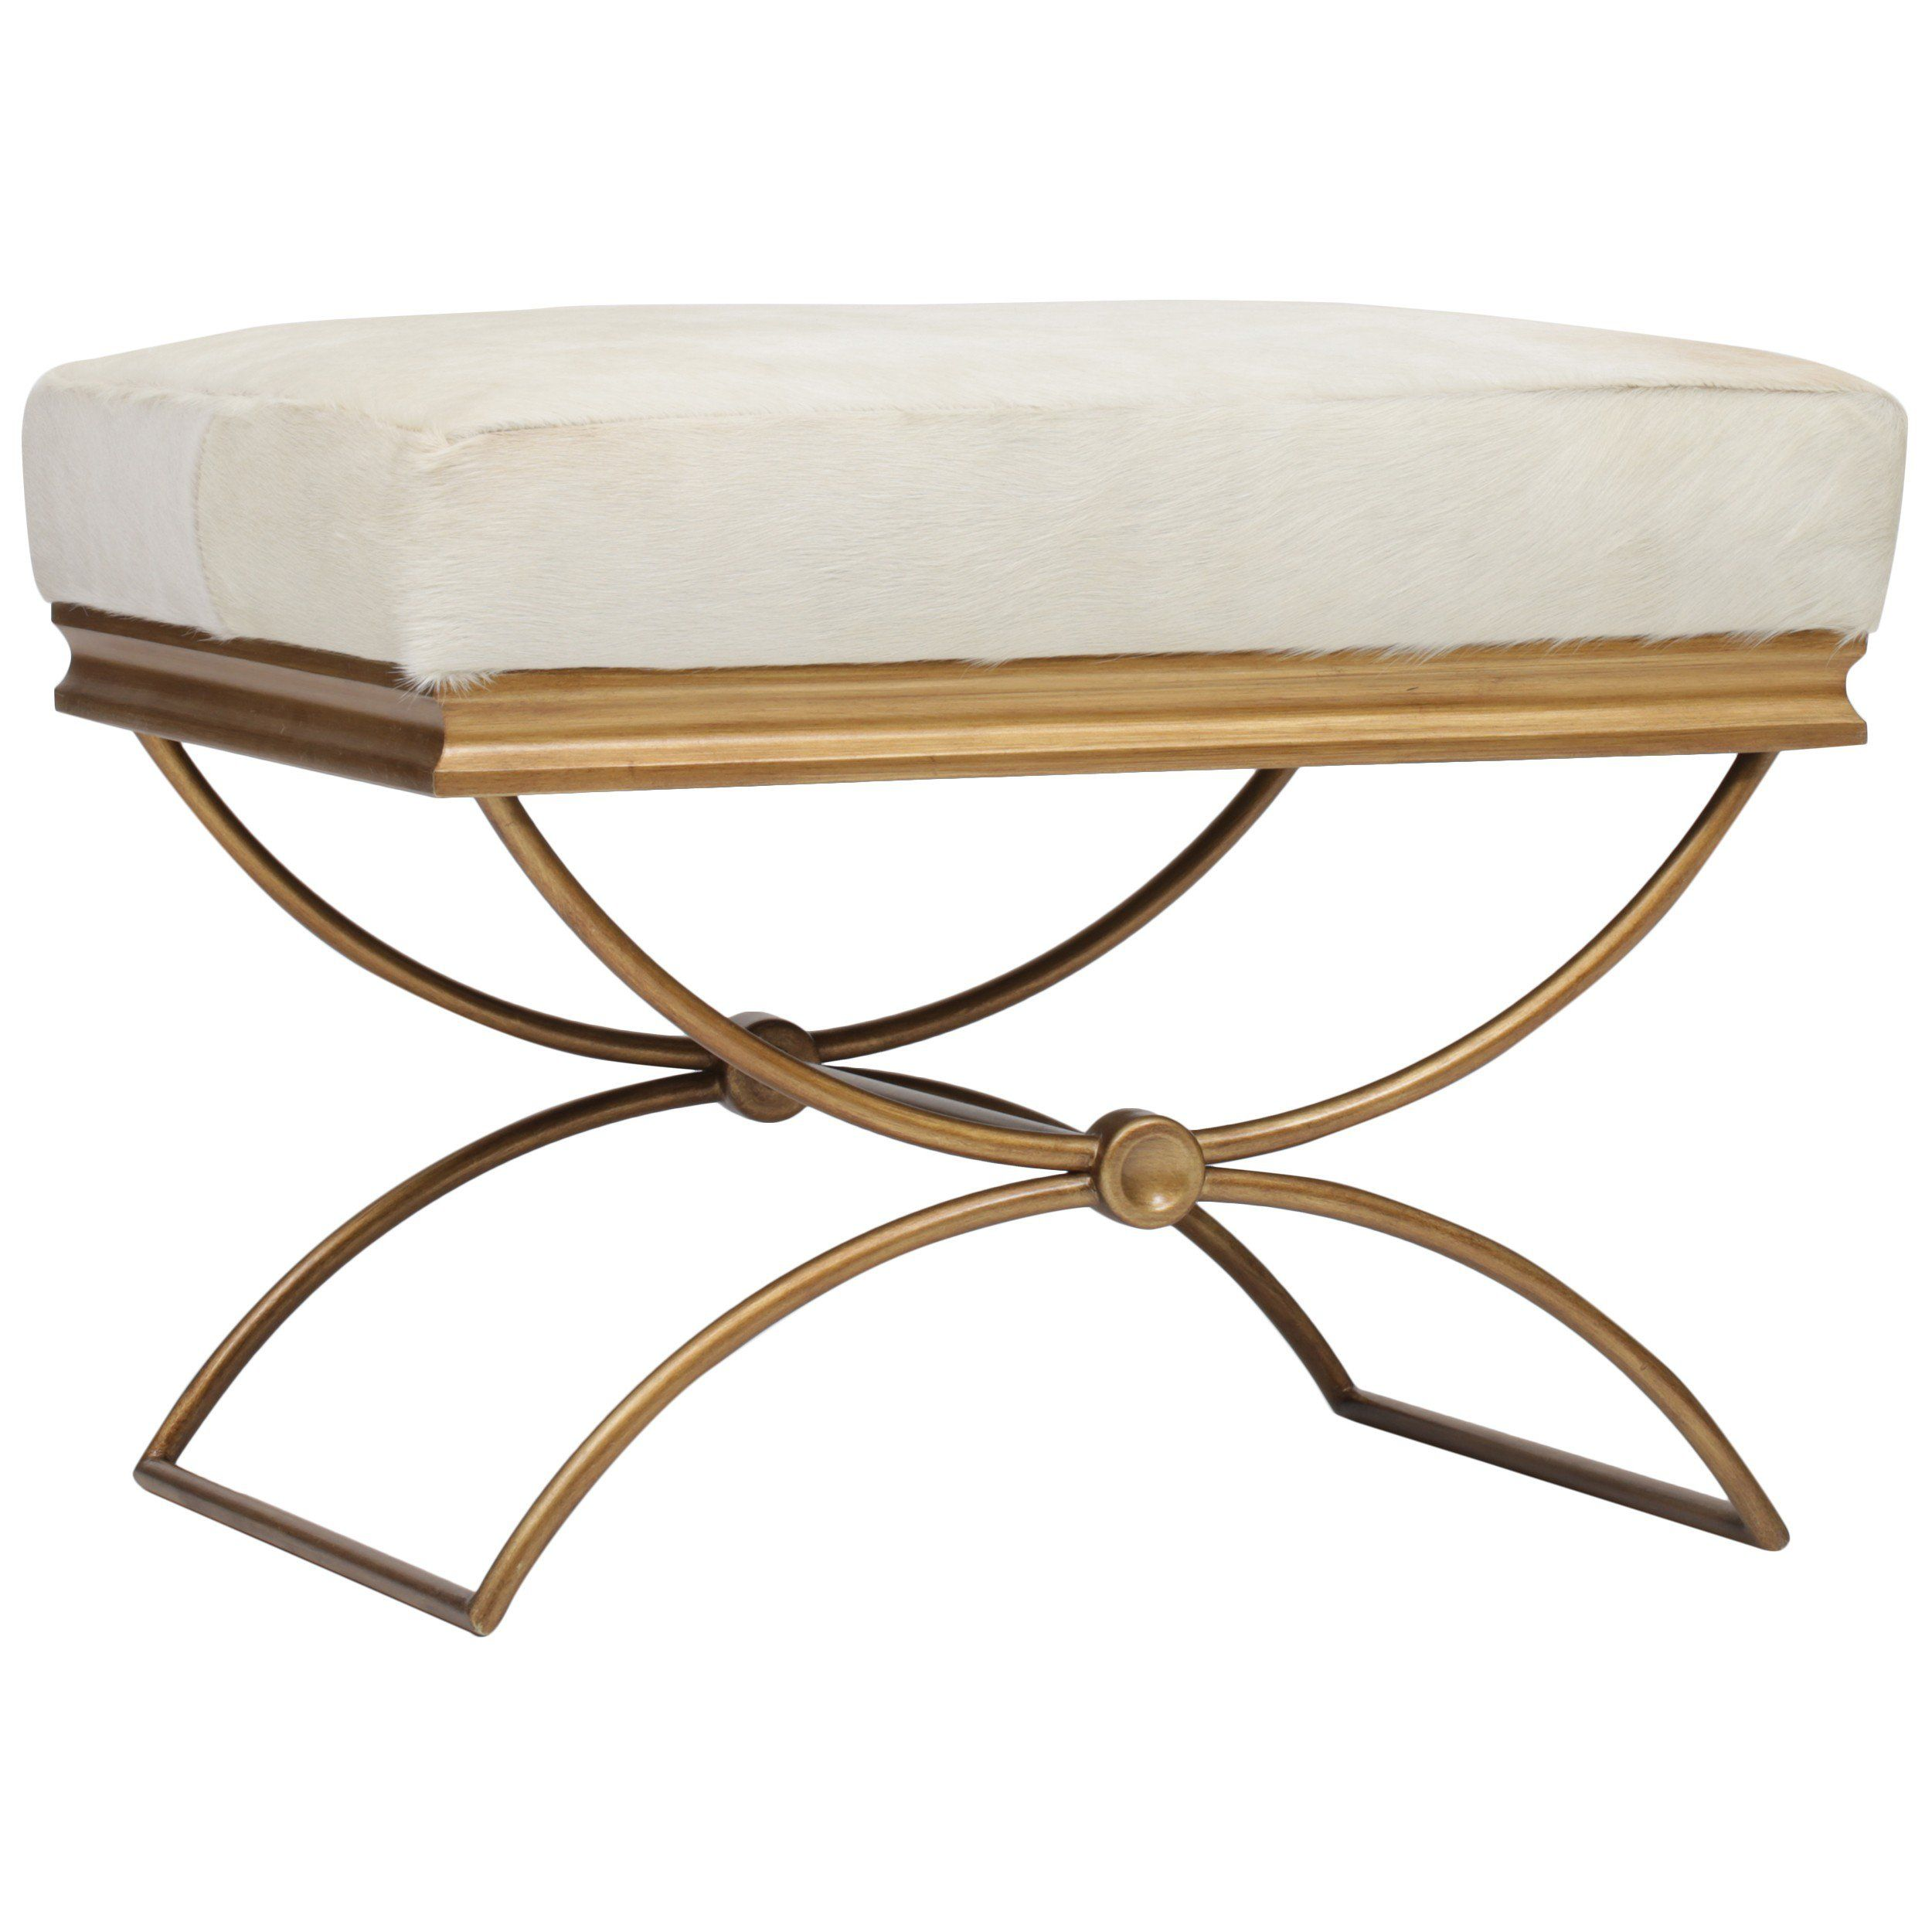 Brando ottoman cocktail ottomans accent tables furniture